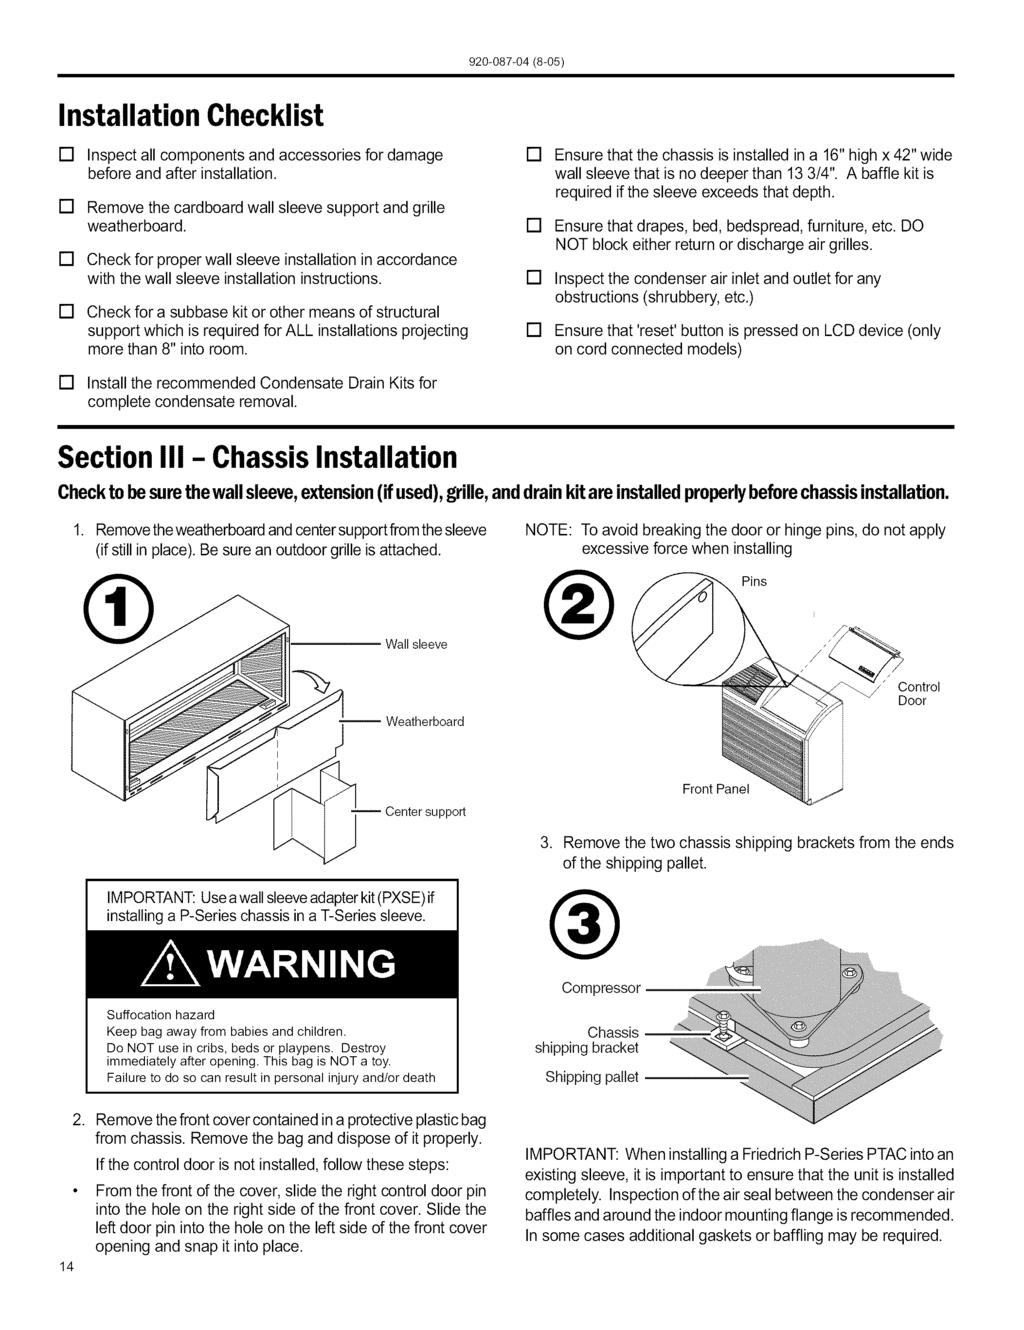 Ptac Installation Operation Guide Packaged Terminal Air White Rodgers Thermostat Wiring 1f82 51 Checklist Inspect All Components And Accessories For Damage Before After